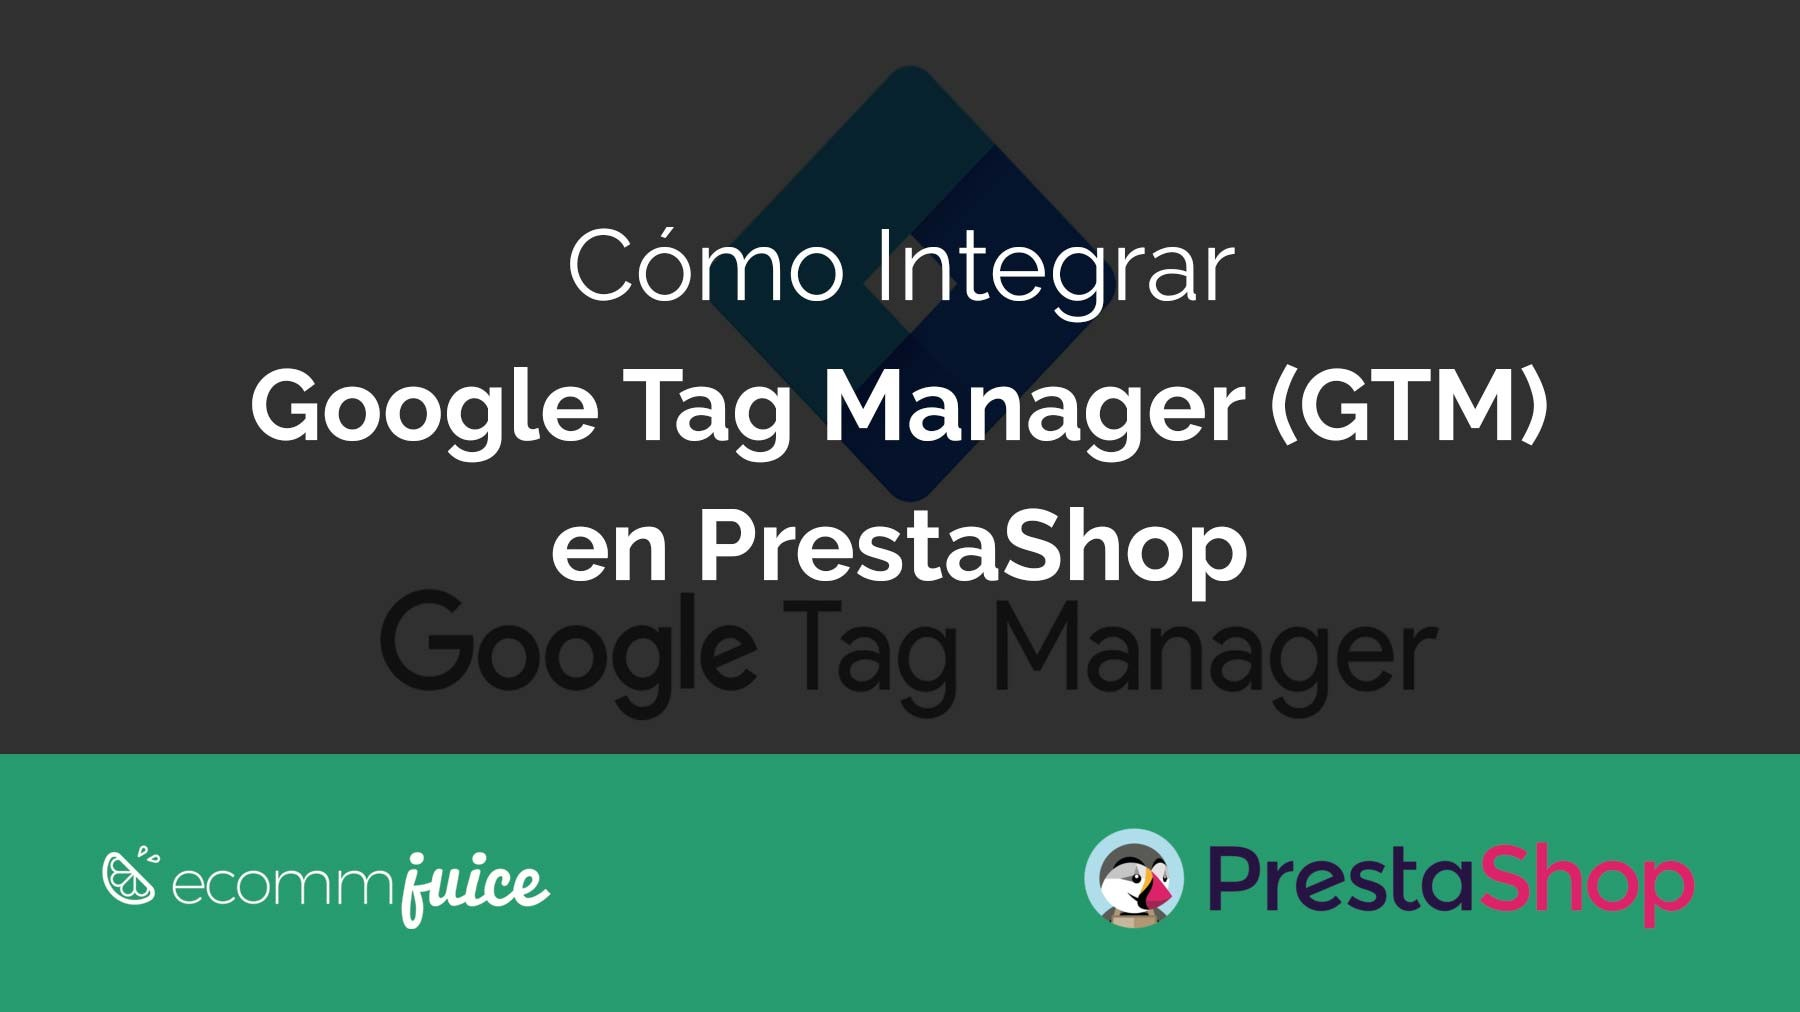 Cómo Integrar Google Tag Manager (GTM) en PrestaShop